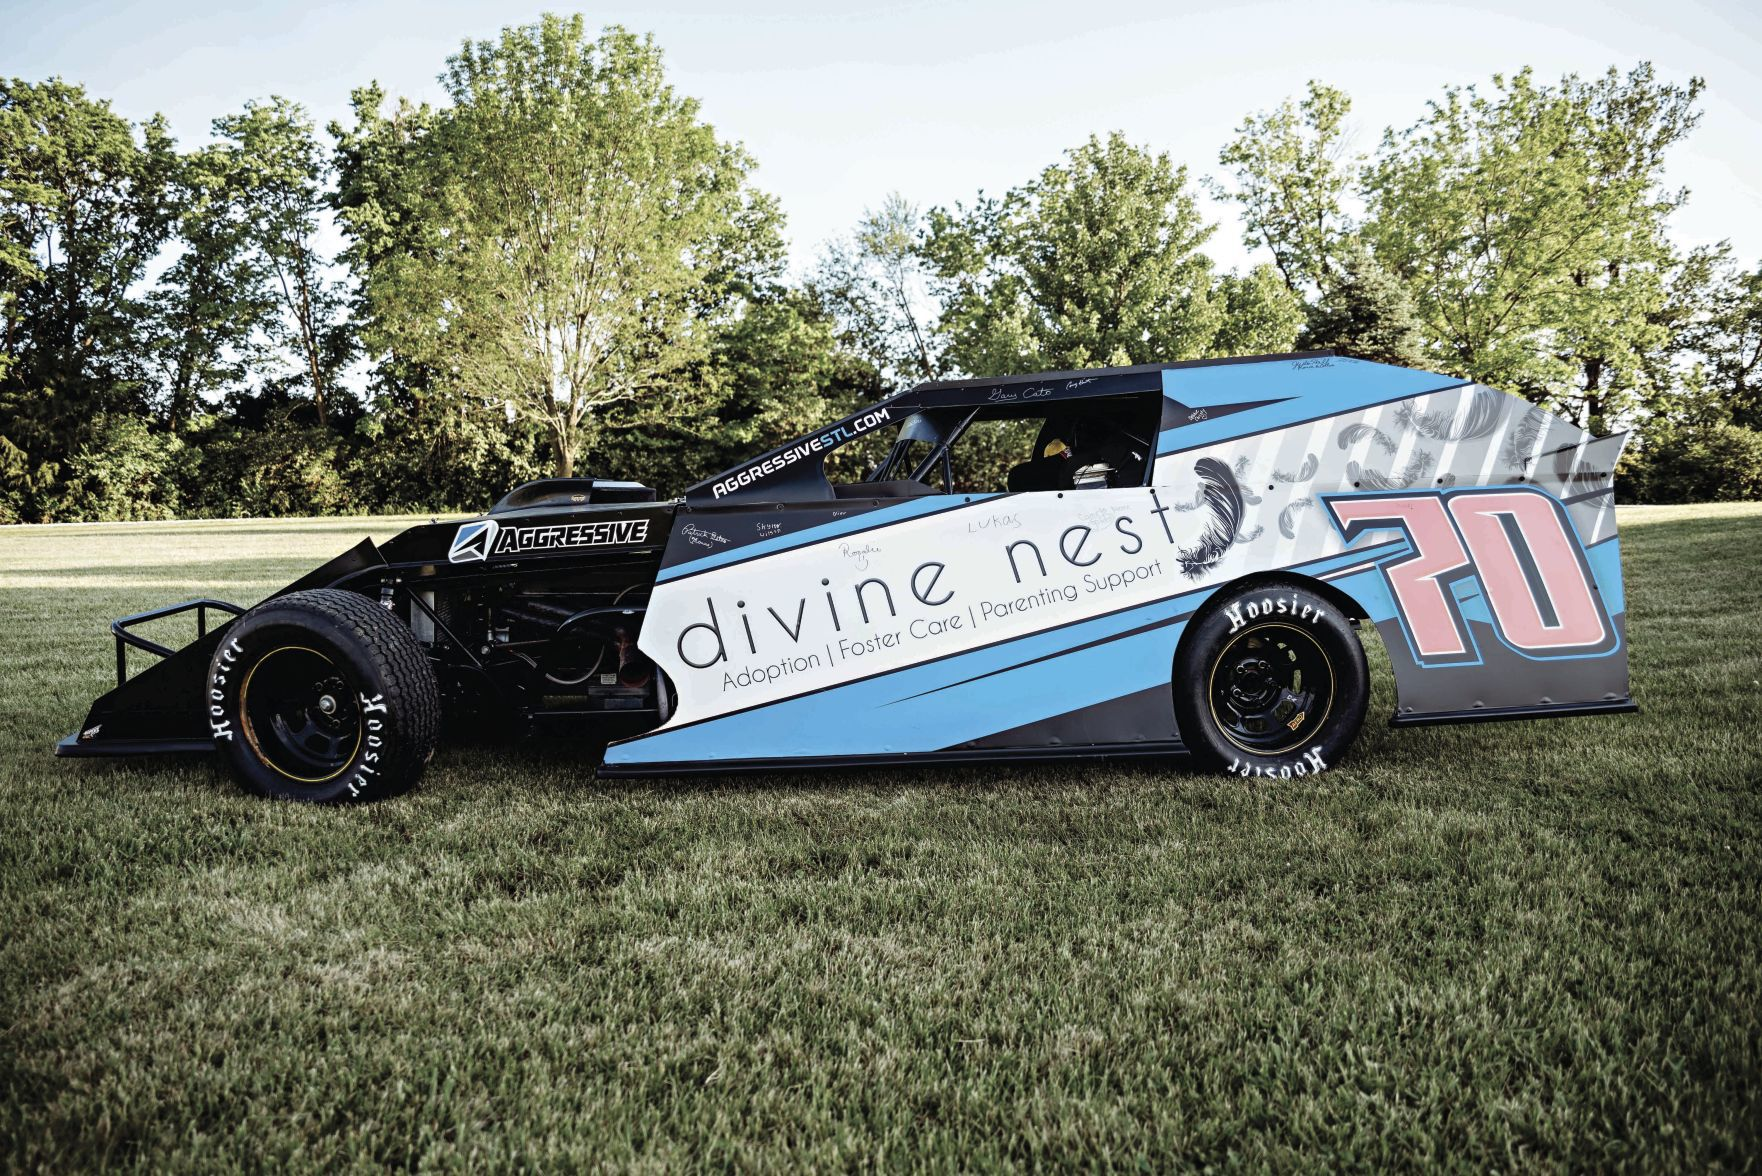 Divine Nest finds support from the racing world